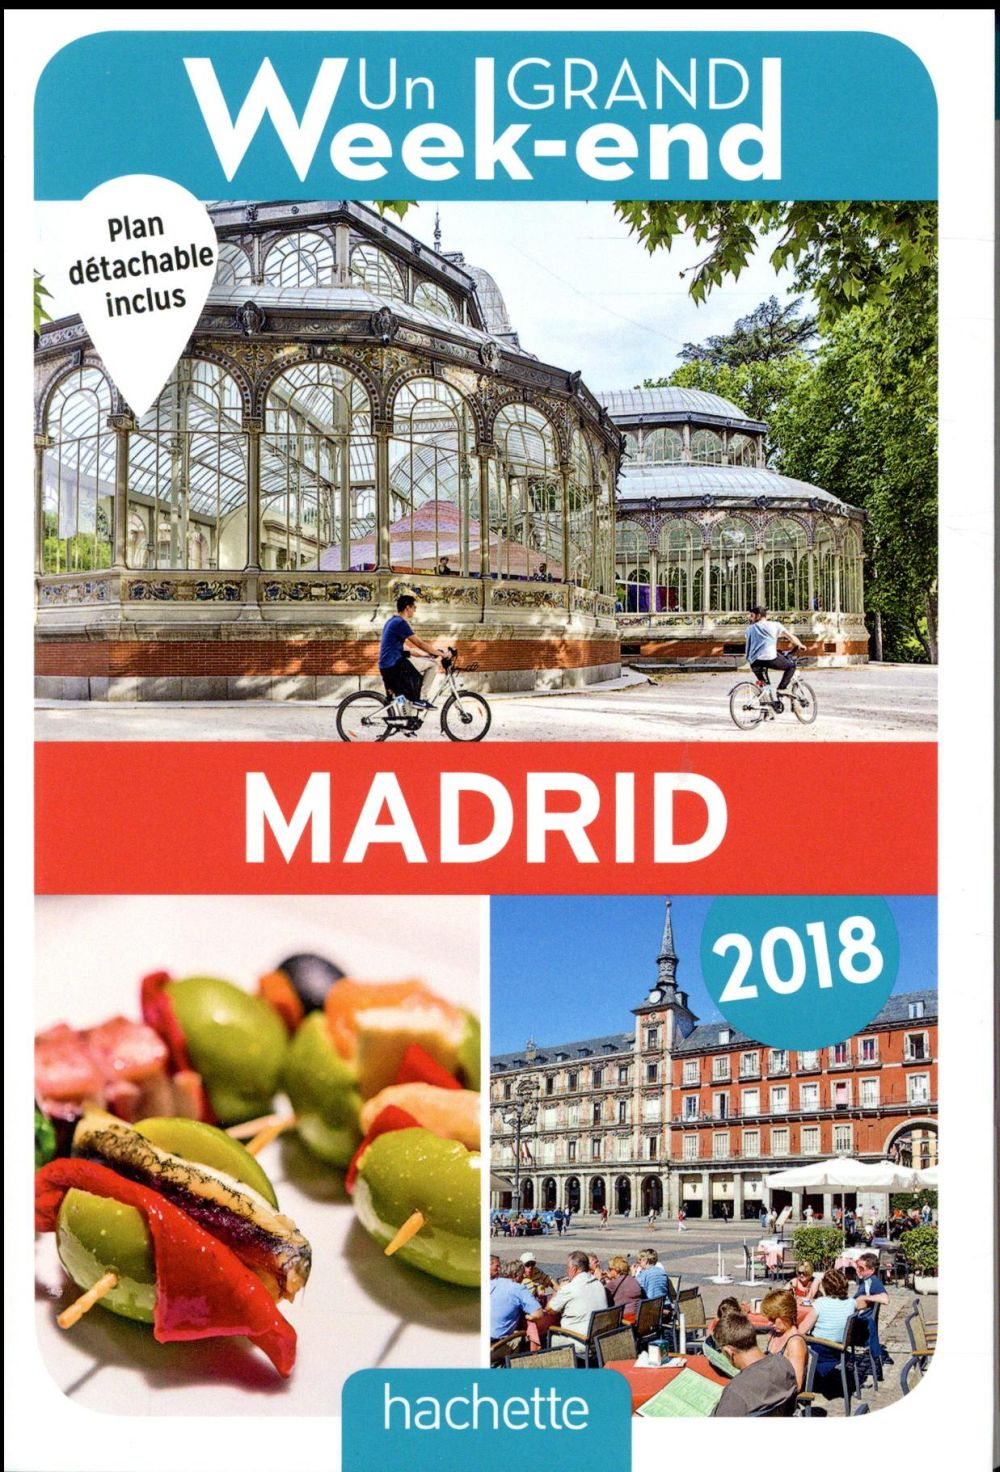 UN GRAND WEEK-END A MADRID 2018